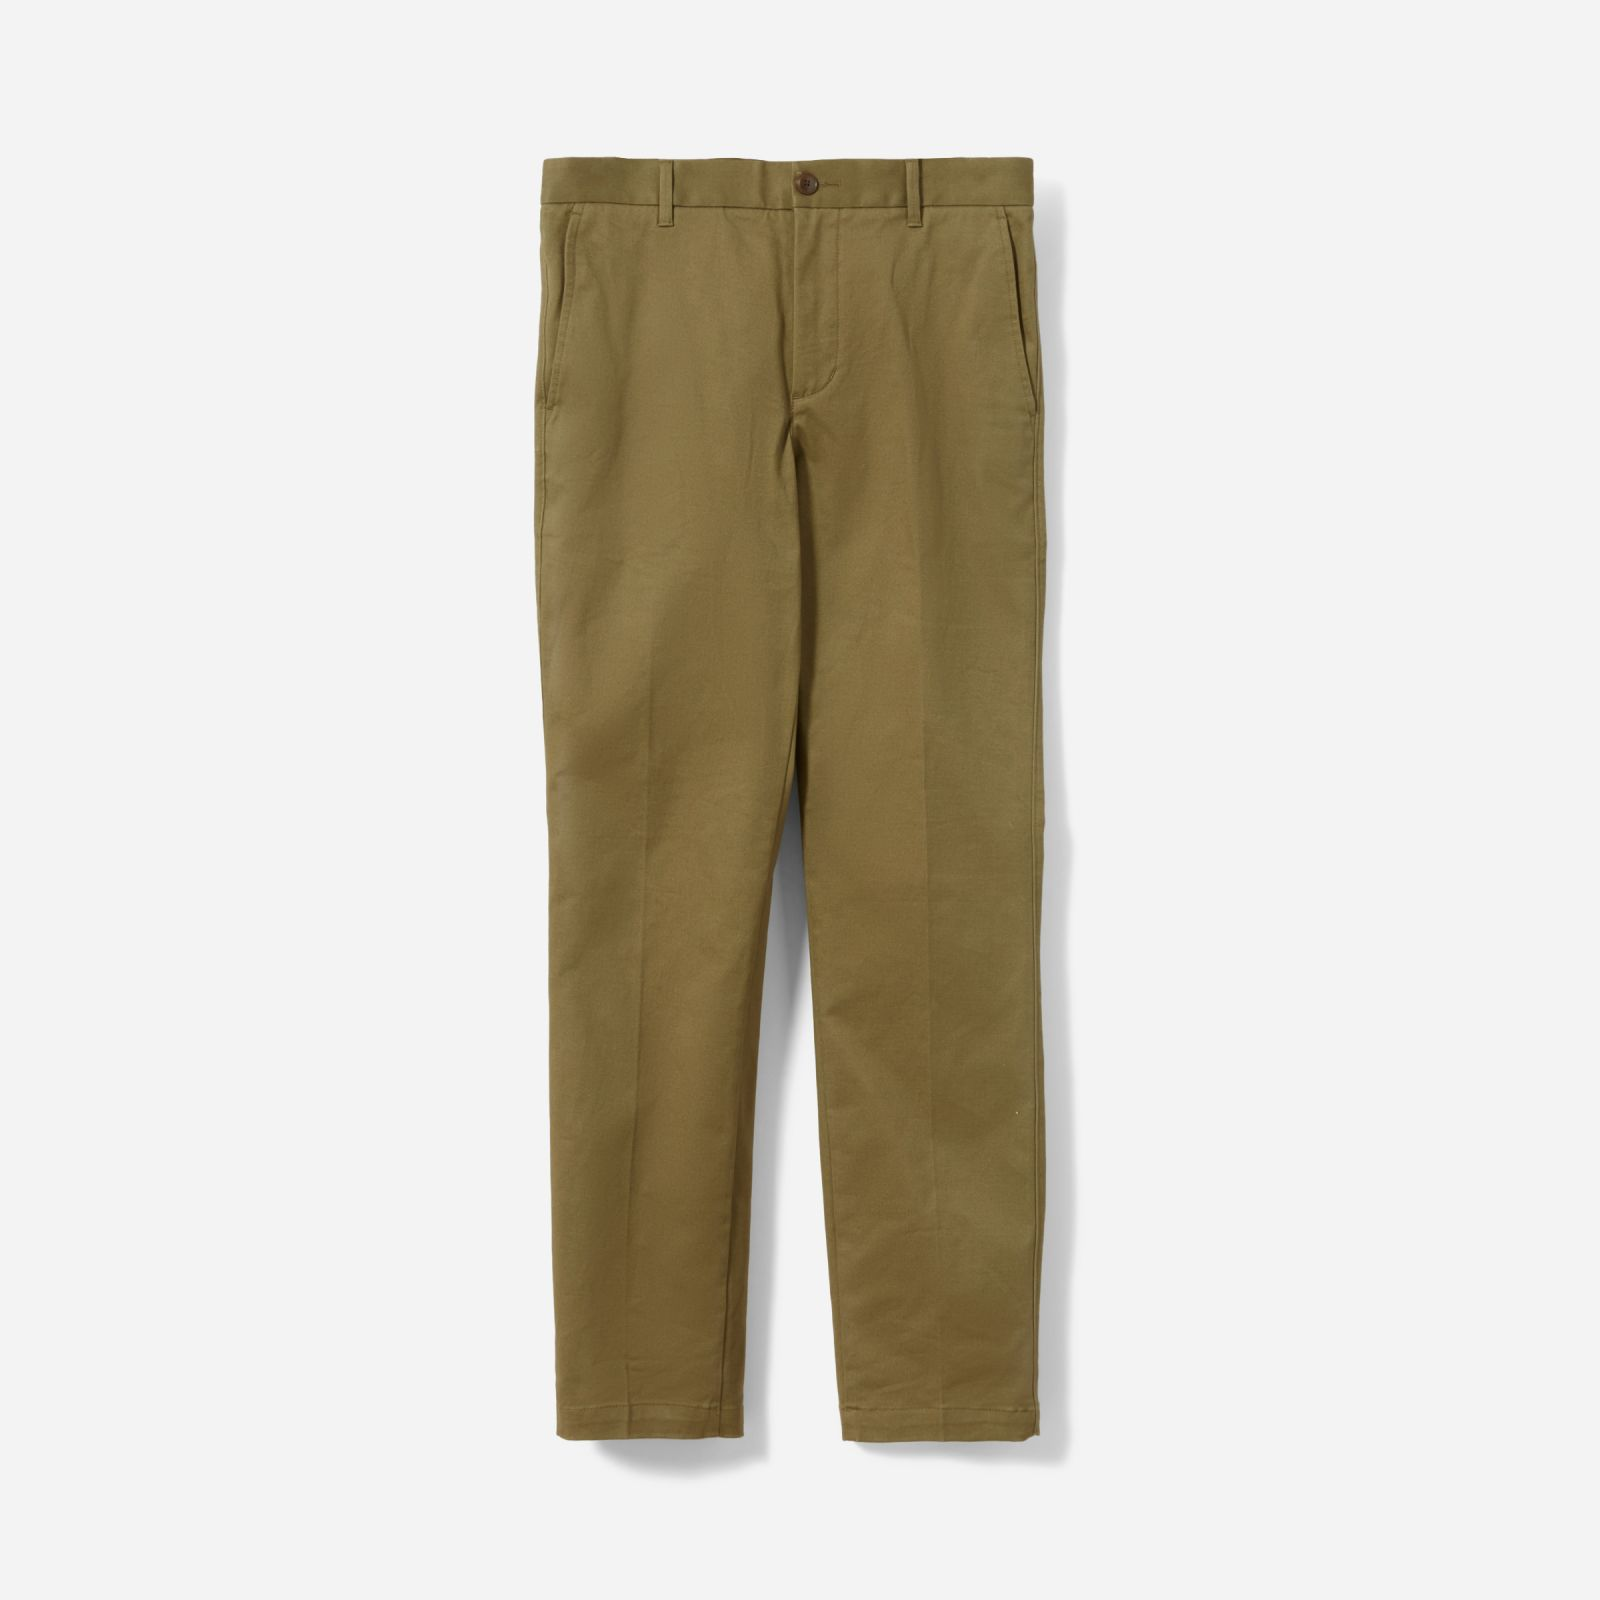 men's heavyweight straight chino by everlane in olive, size 40x32